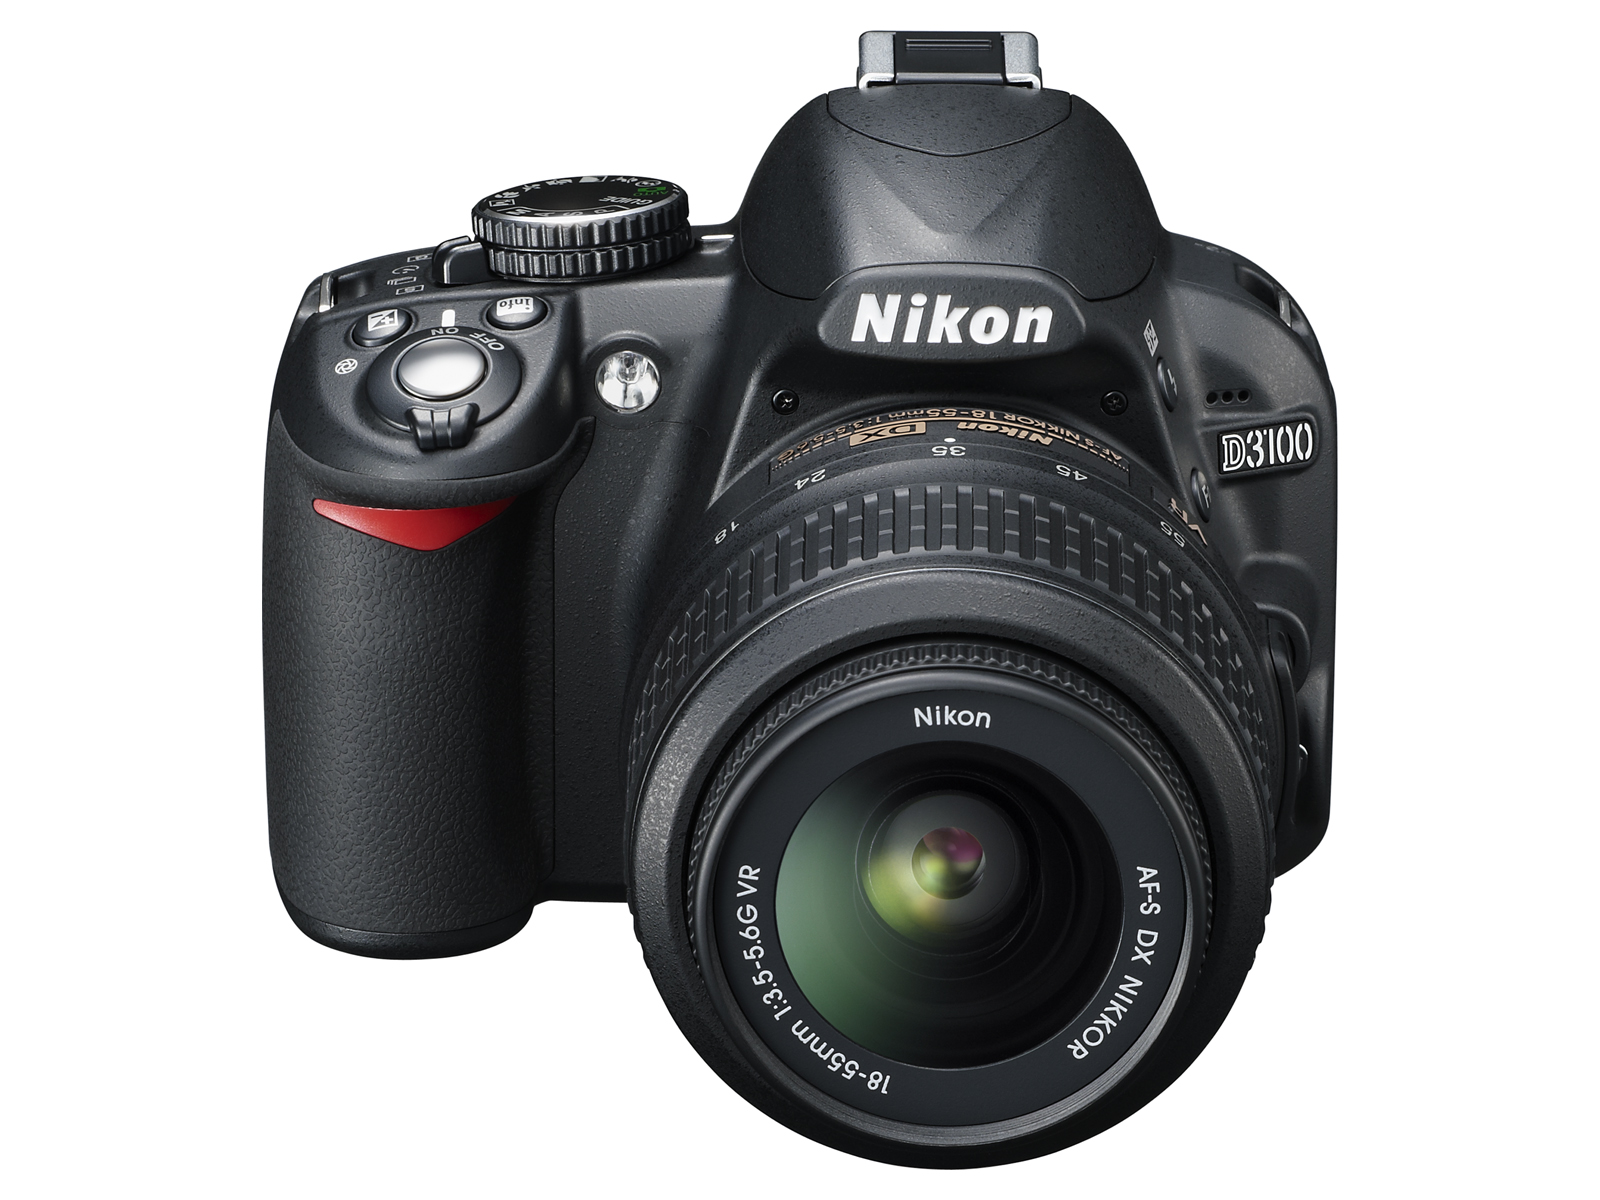 The New Nikon D3100 D-SLR Empowers And Inspires Users As The